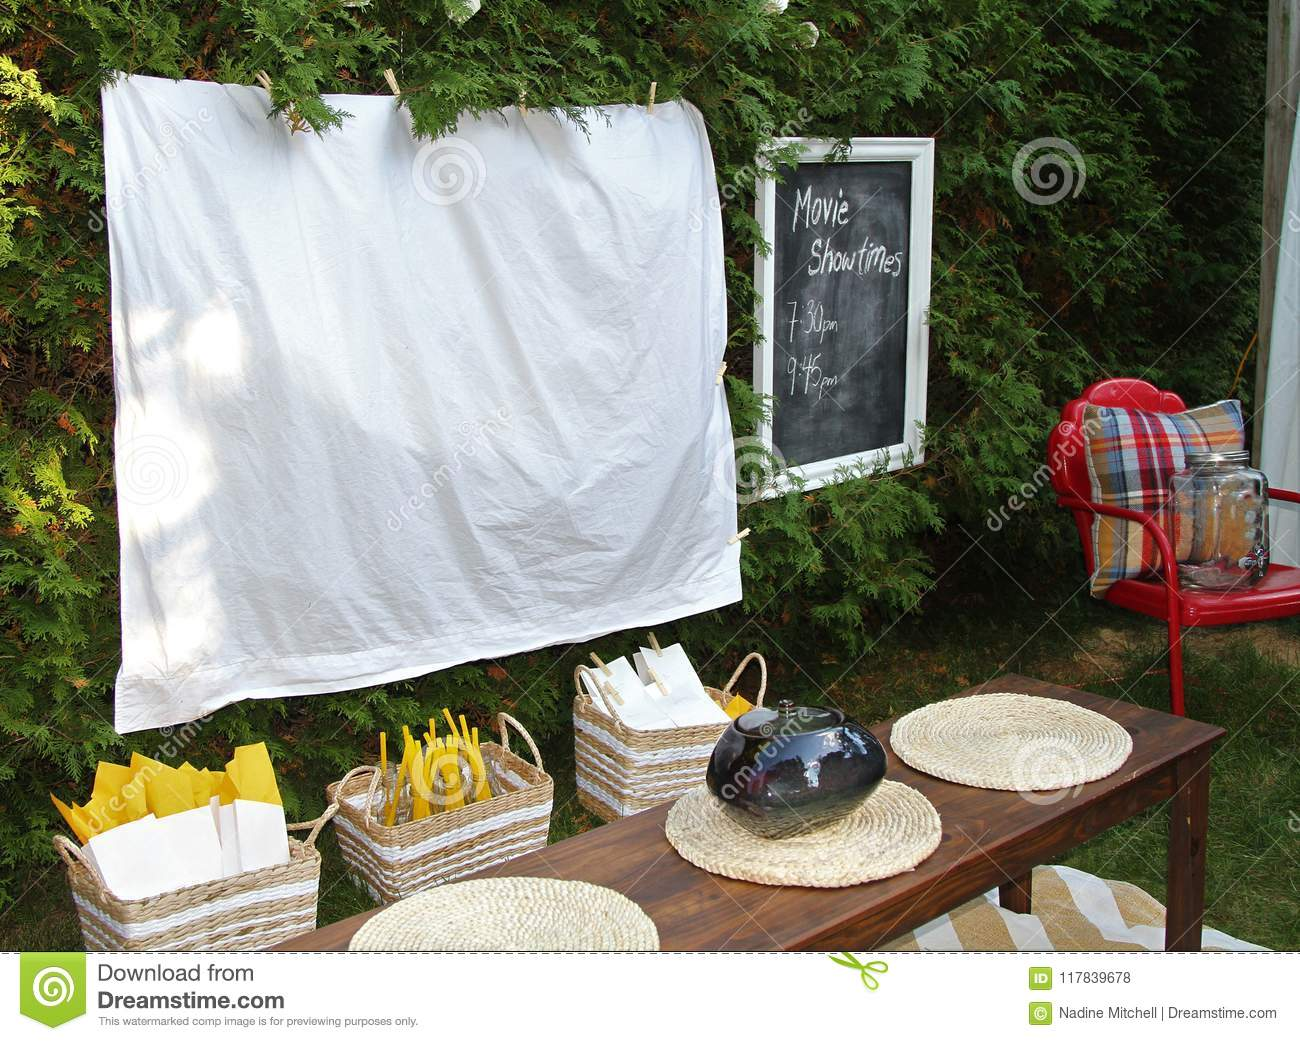 Royalty-Free Stock Photo & Set Up For Watching A Movie Outdoors With Food And Chairs Stock ...